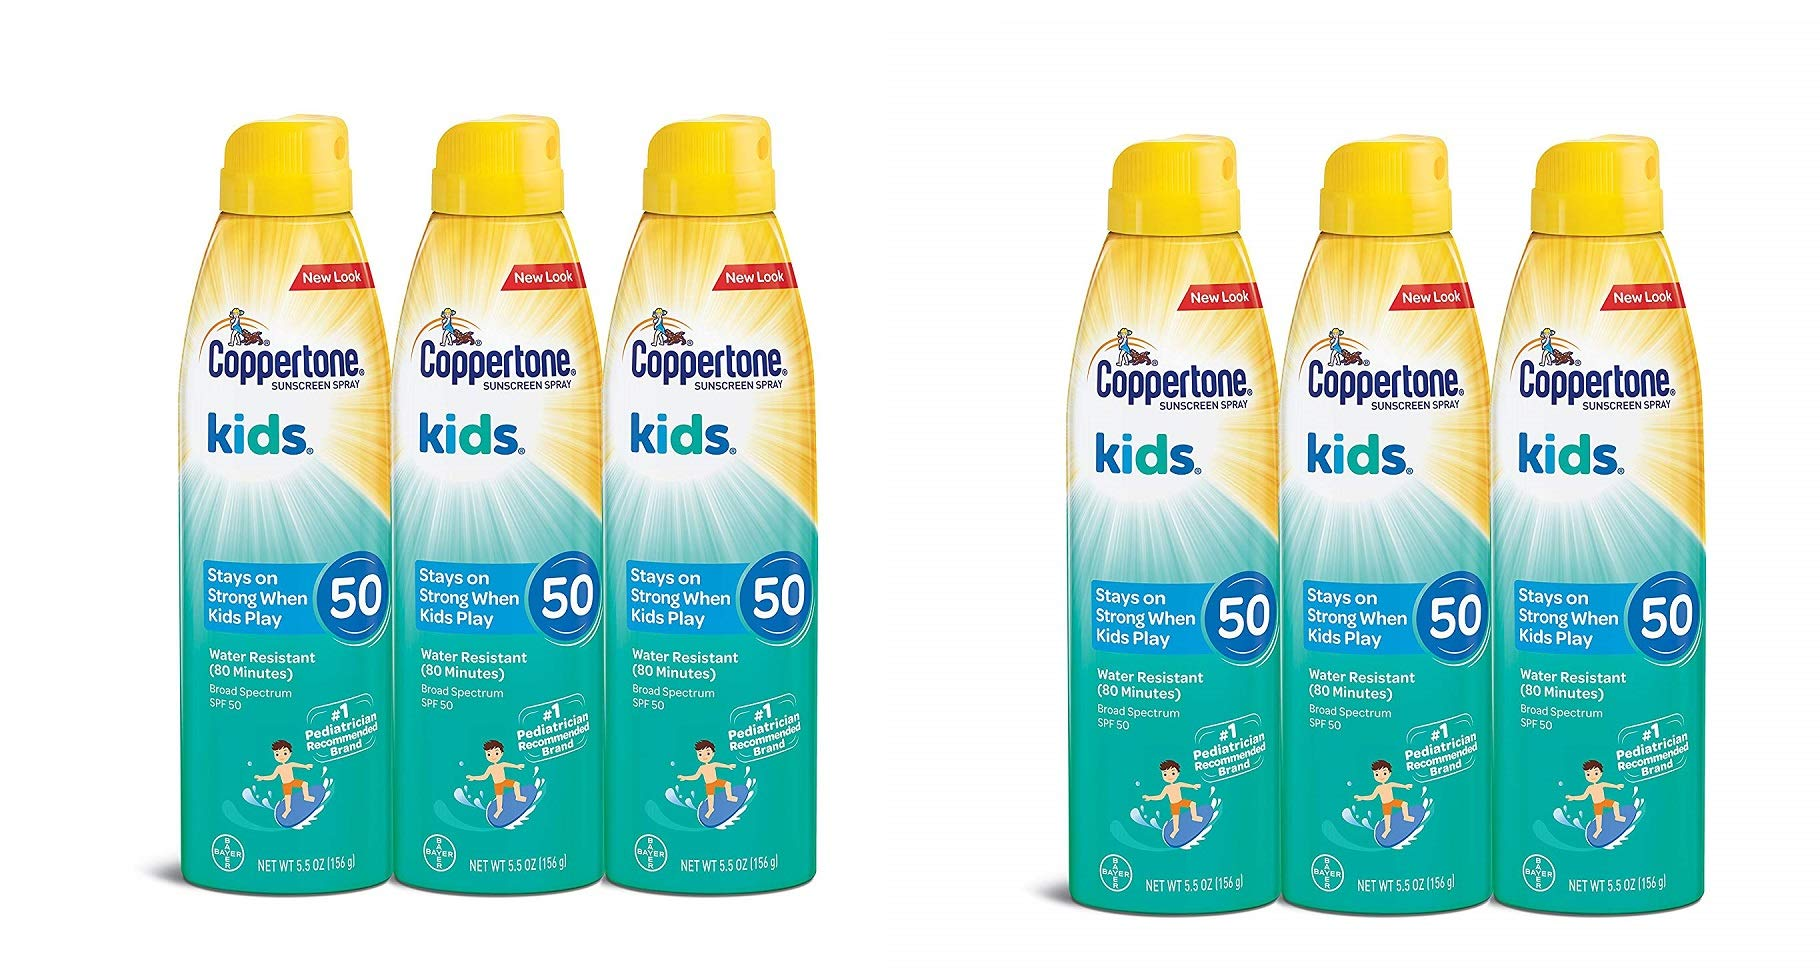 Coppertone KIDS Continuous Sunscreen SPF 50 Multipack, 5.5 Ounce, Pack of 3 by Coppertone